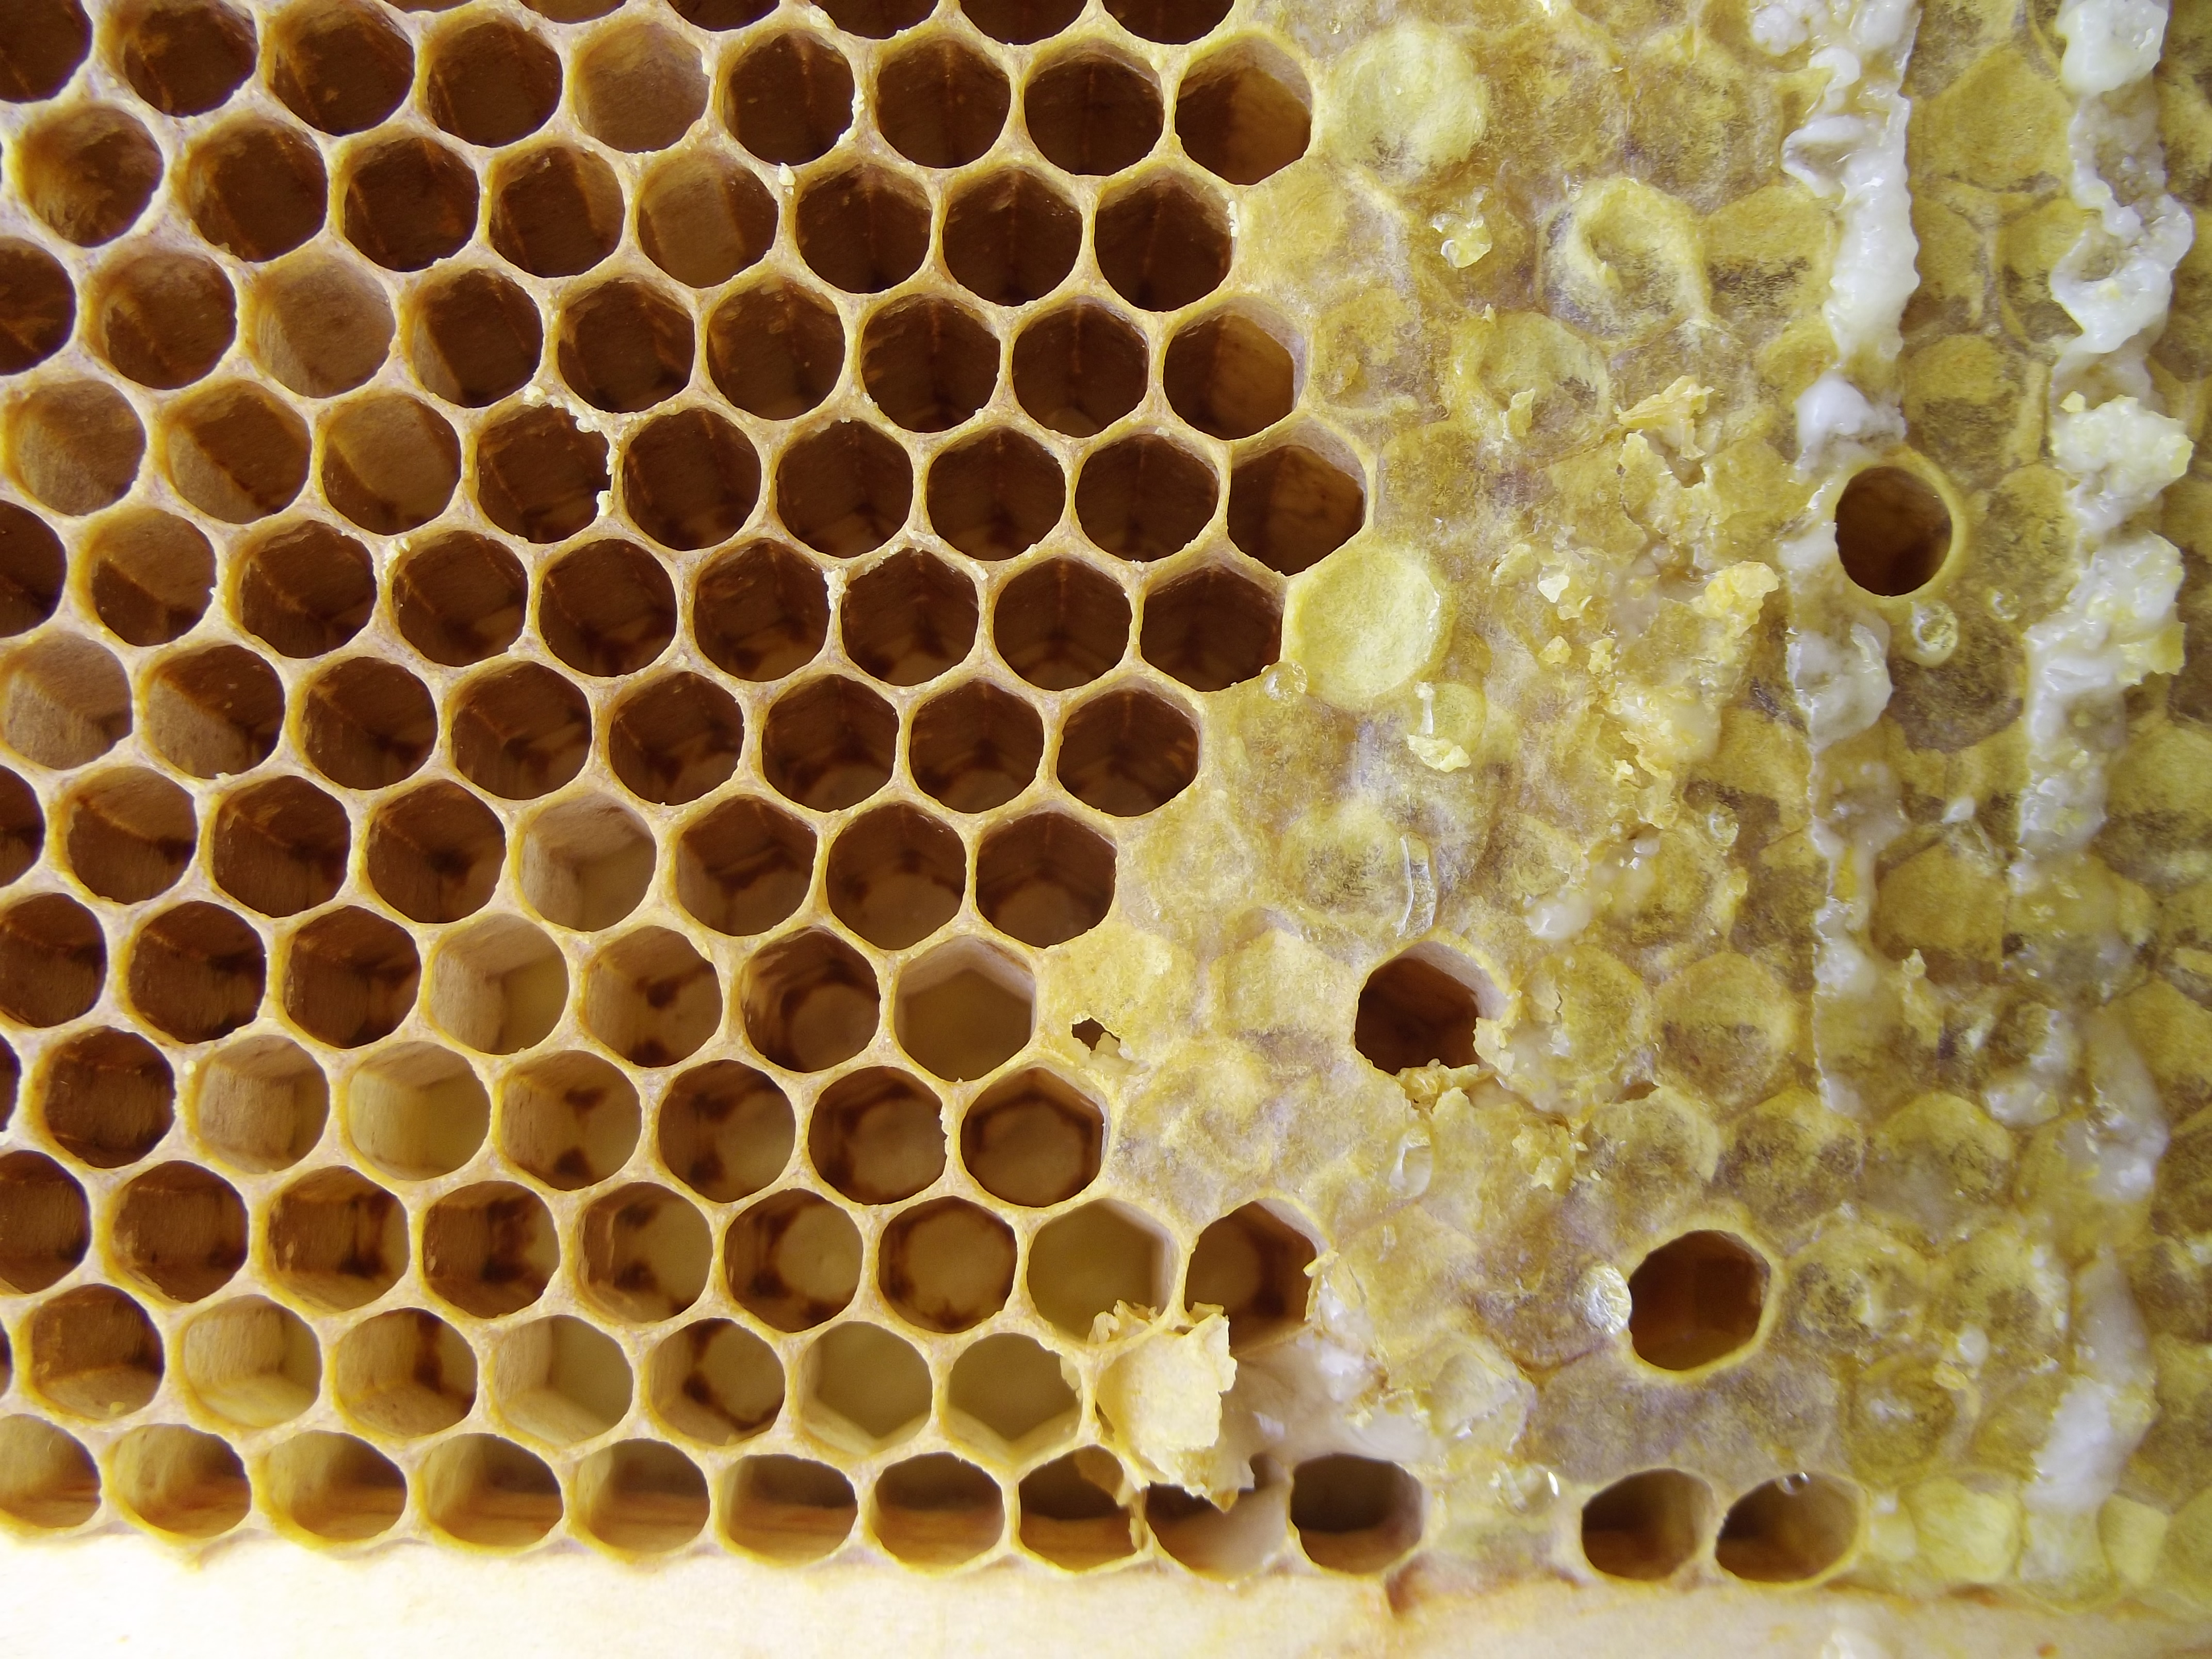 Ten Things You Might Not Know About Beeswax